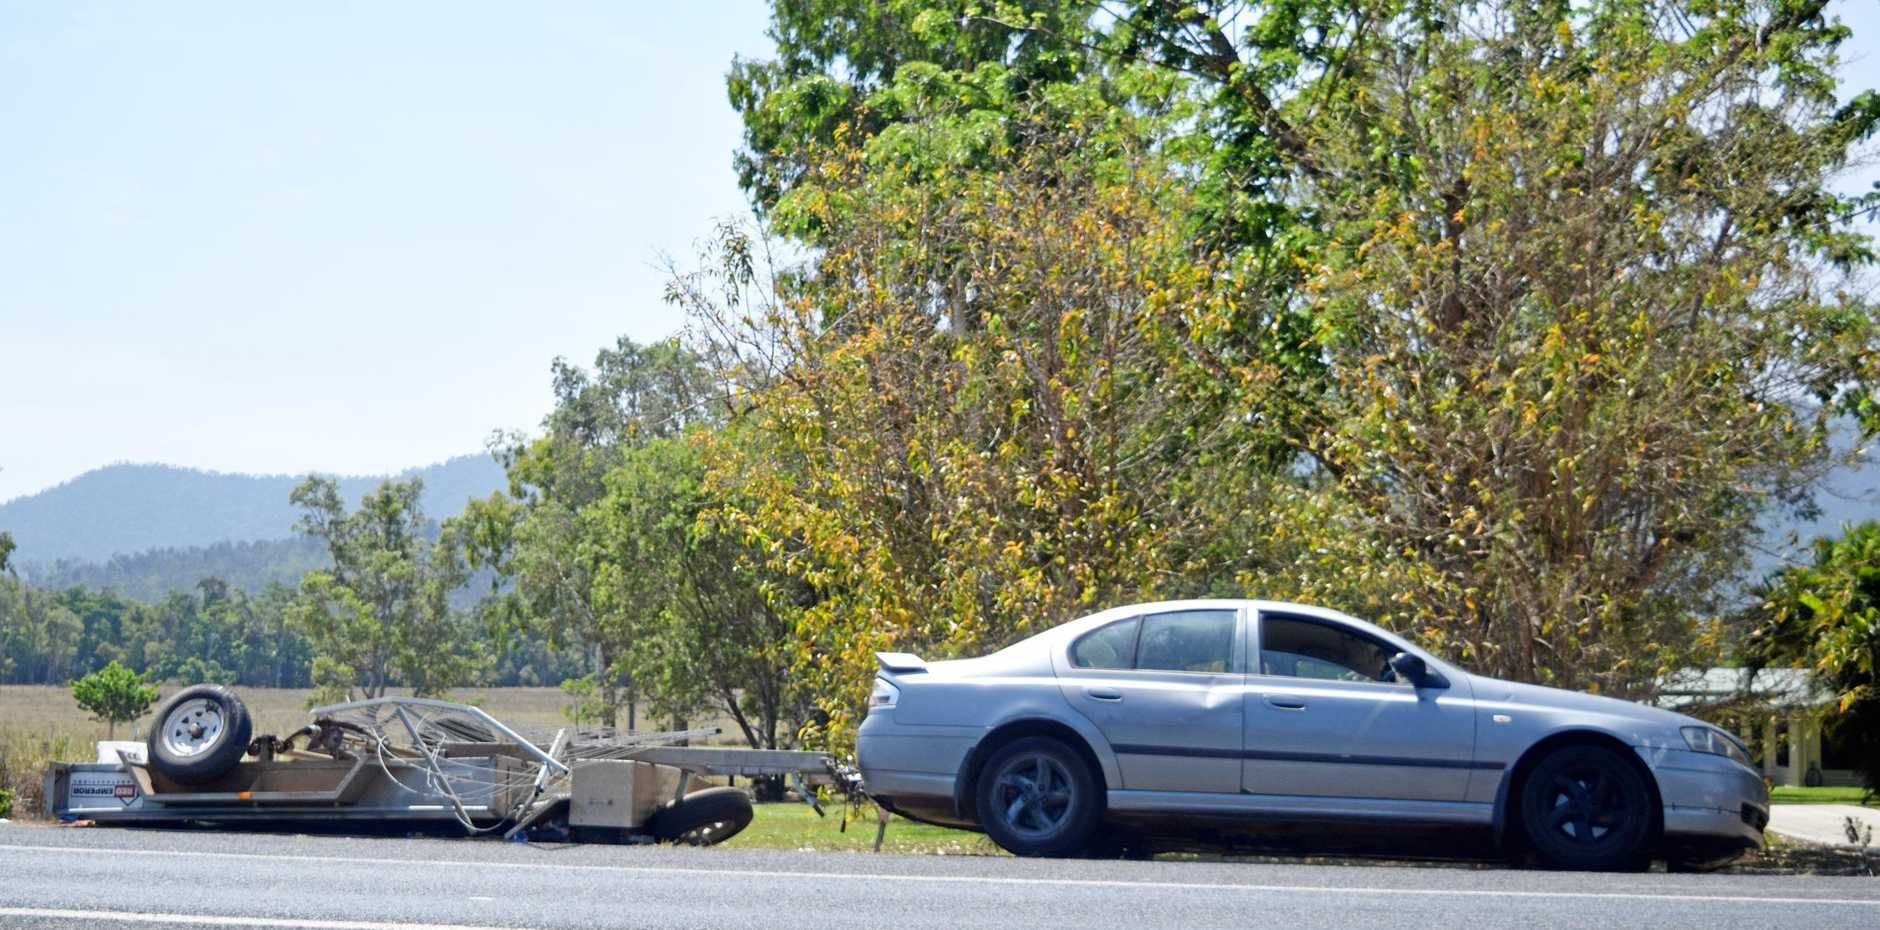 A trailer, being towed by a car, tipped over on Shute Harbour Rd in Cannon Valley, this afternoon.